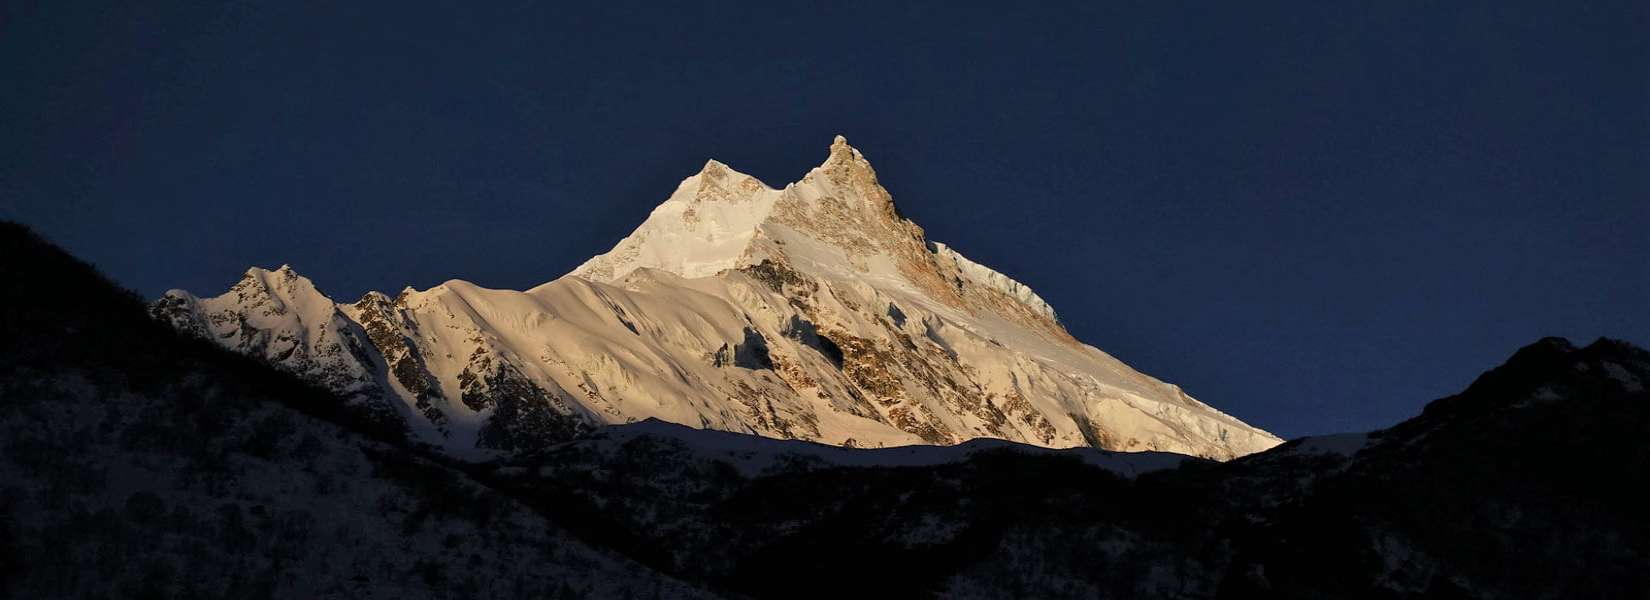 Great view of Mt. Manaslu from Samagaon